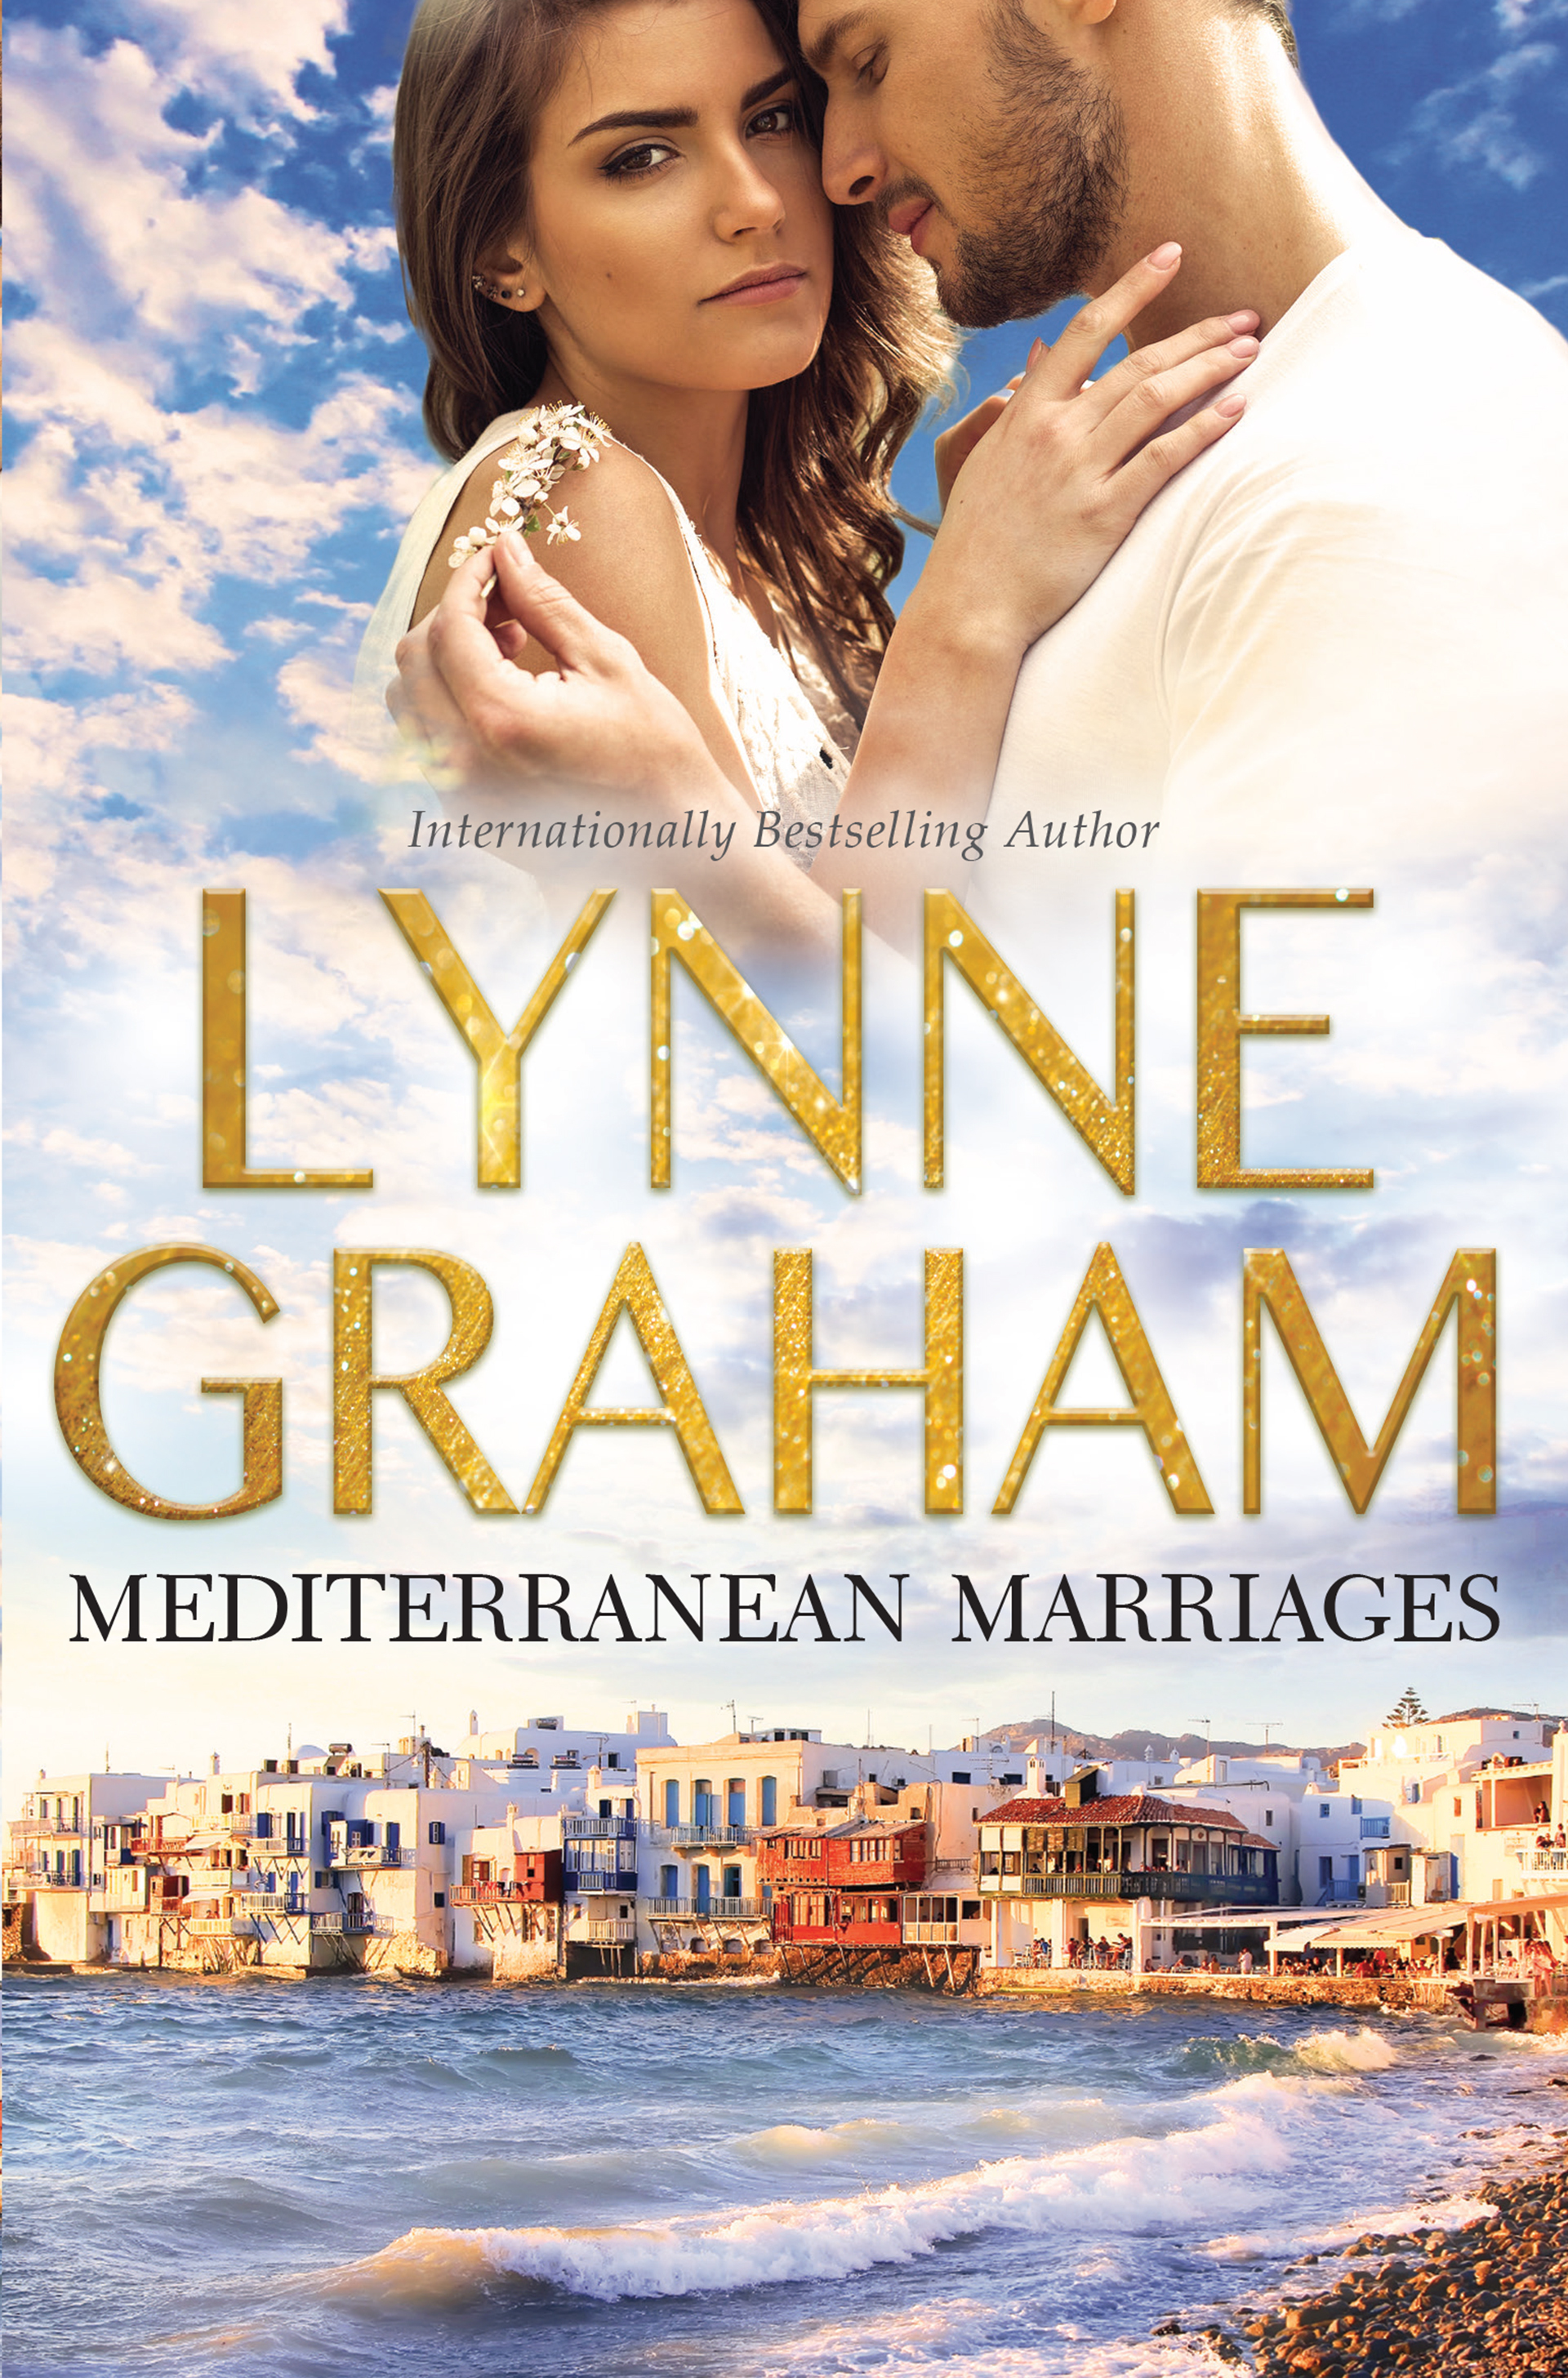 Mediterranean Marriages: The Cozakis Bride / The Spanish Groom / A Mediterranean Marriage